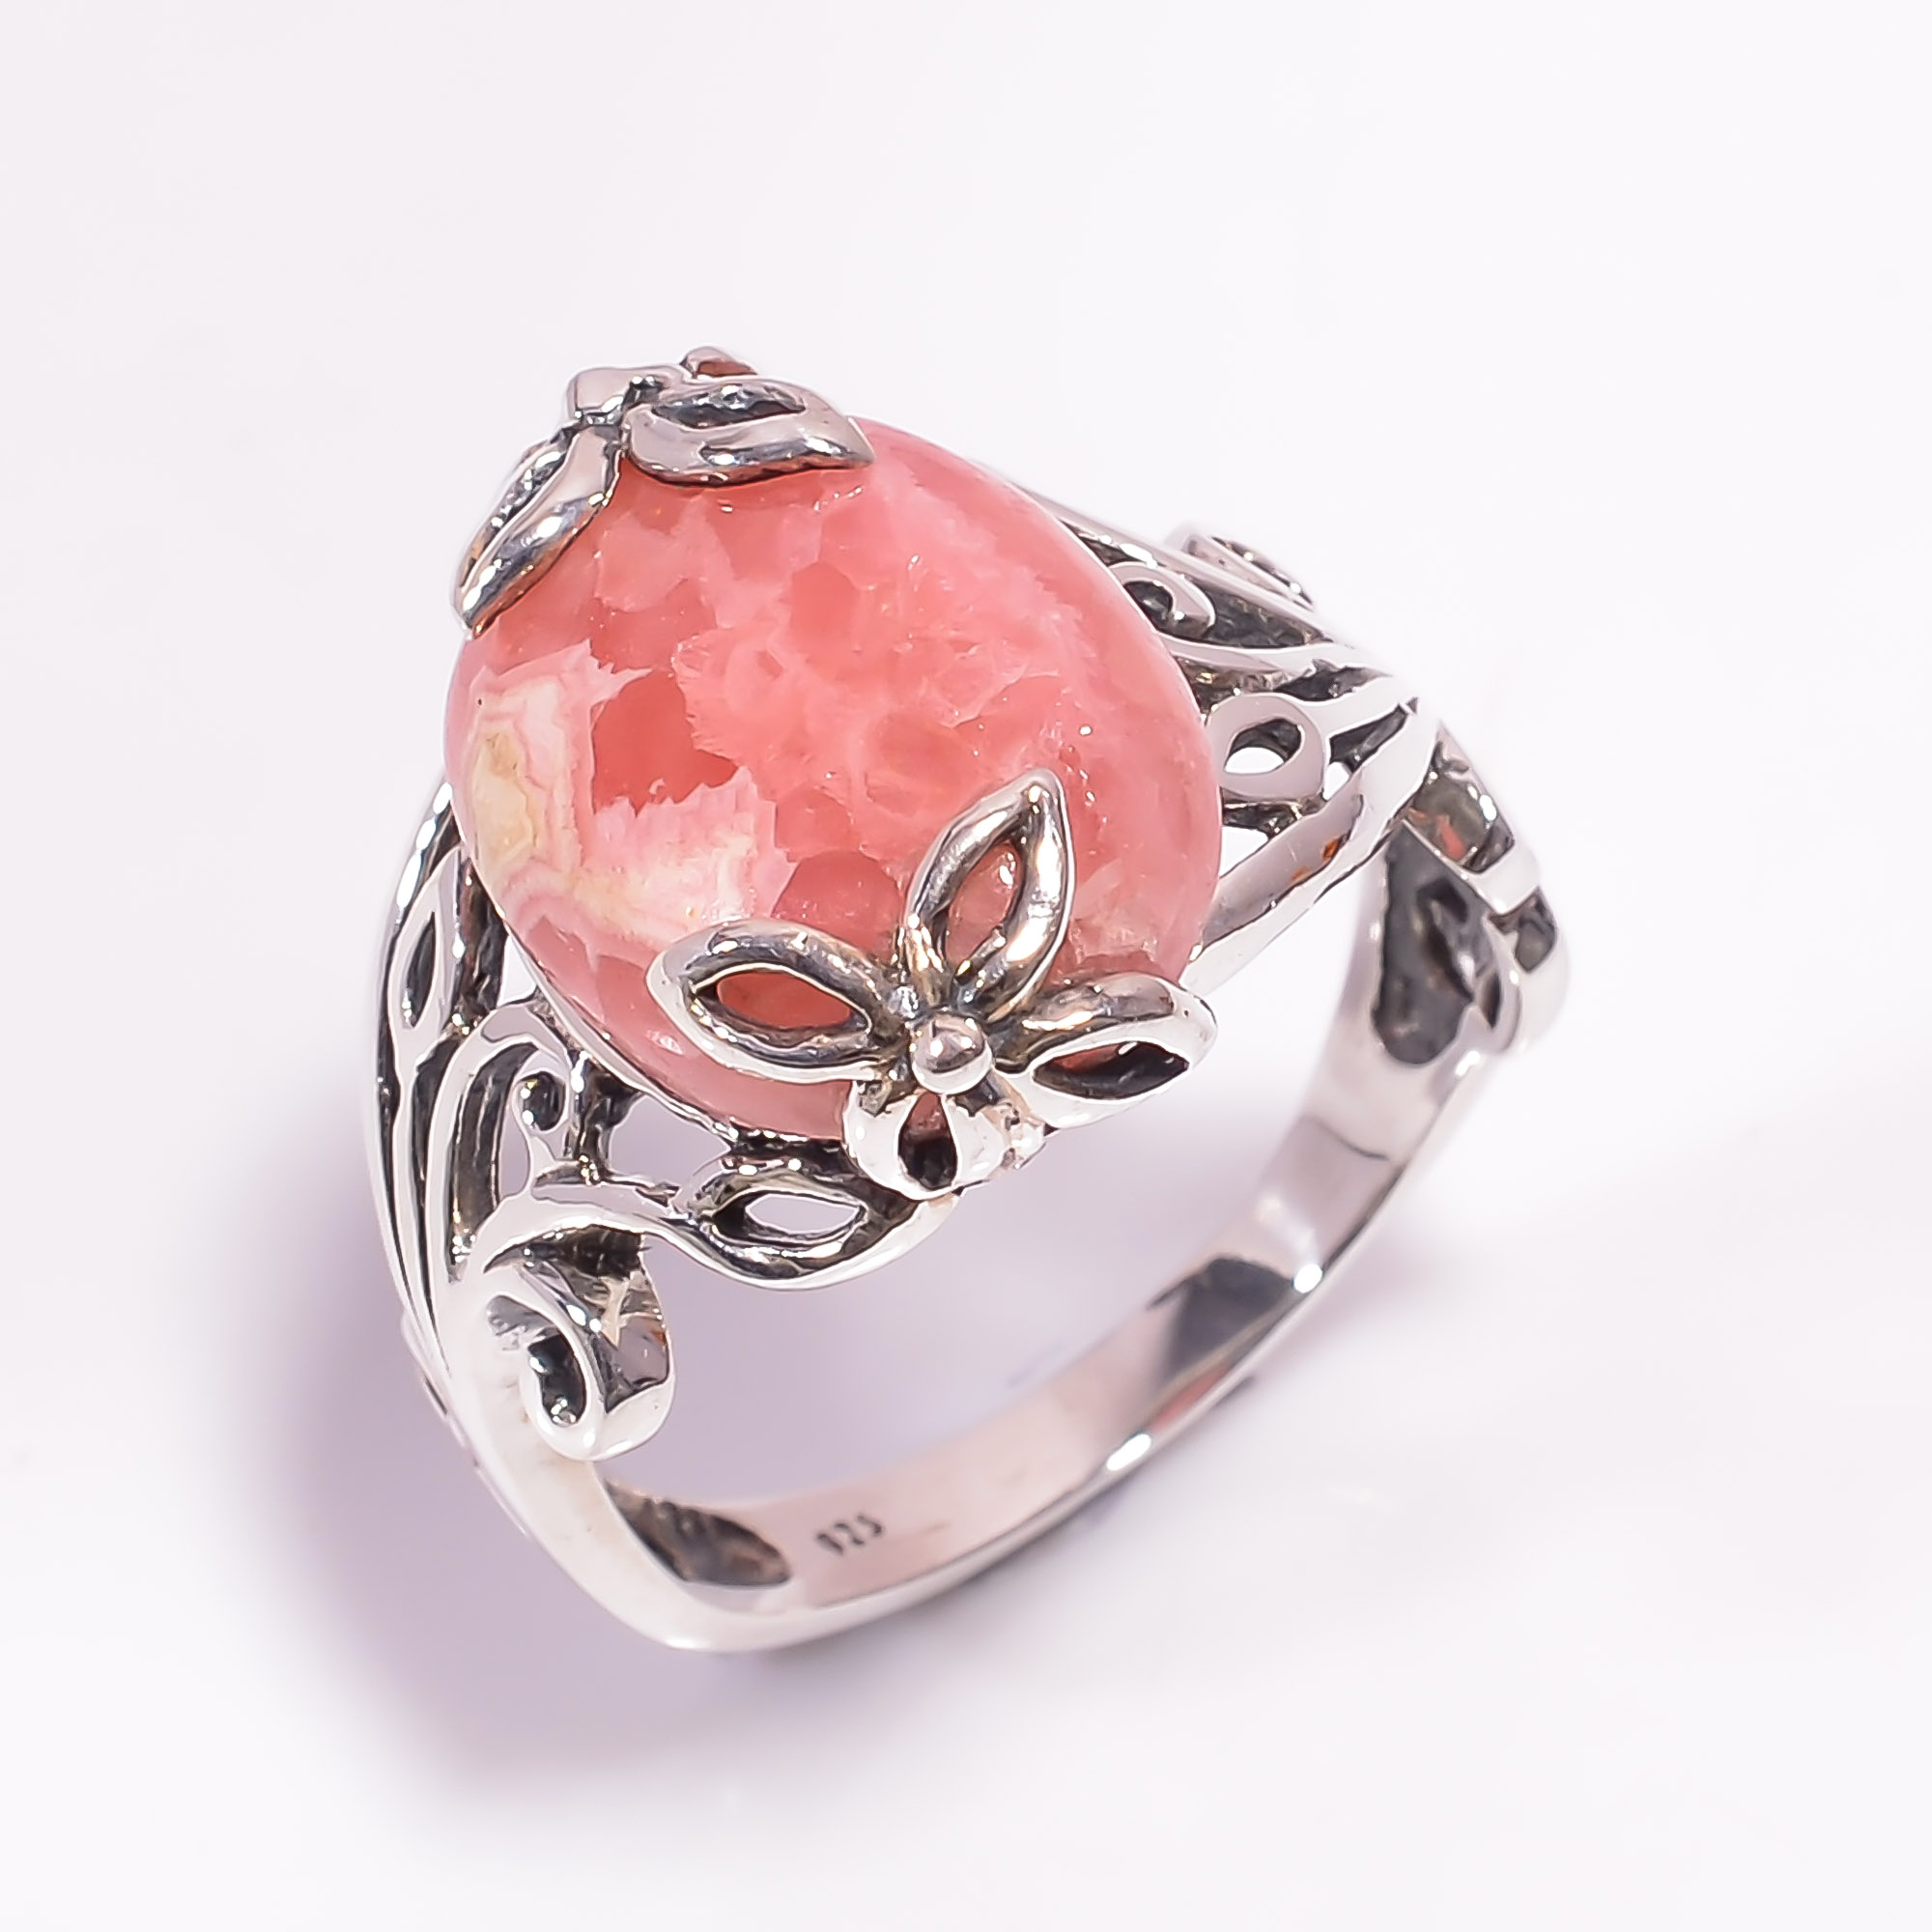 Rhodochrosite Gemstone 925 Sterling Silver Ring Size US 9